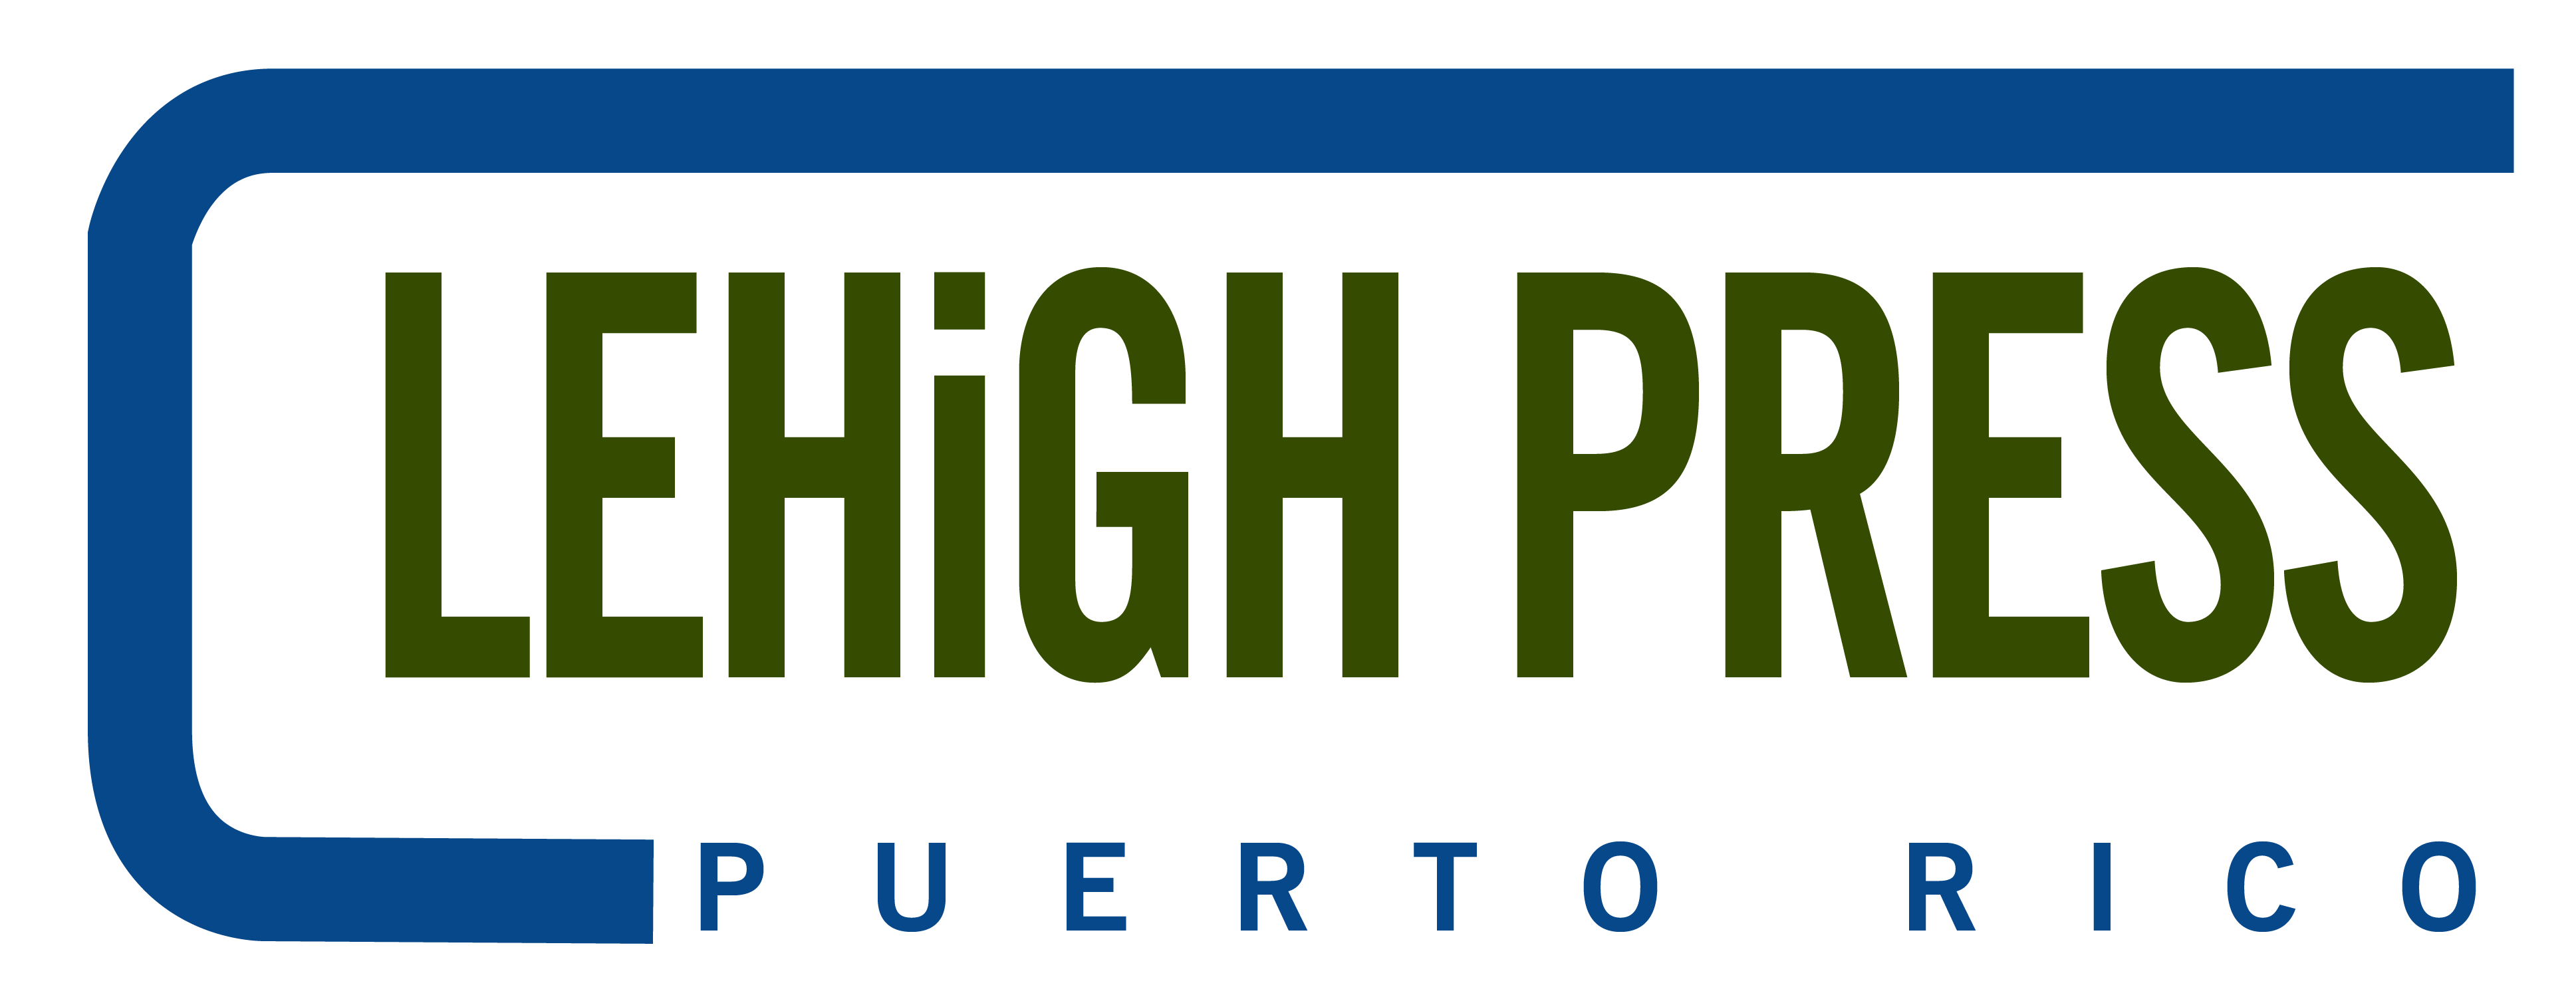 Lehigh Press Puerto Rico